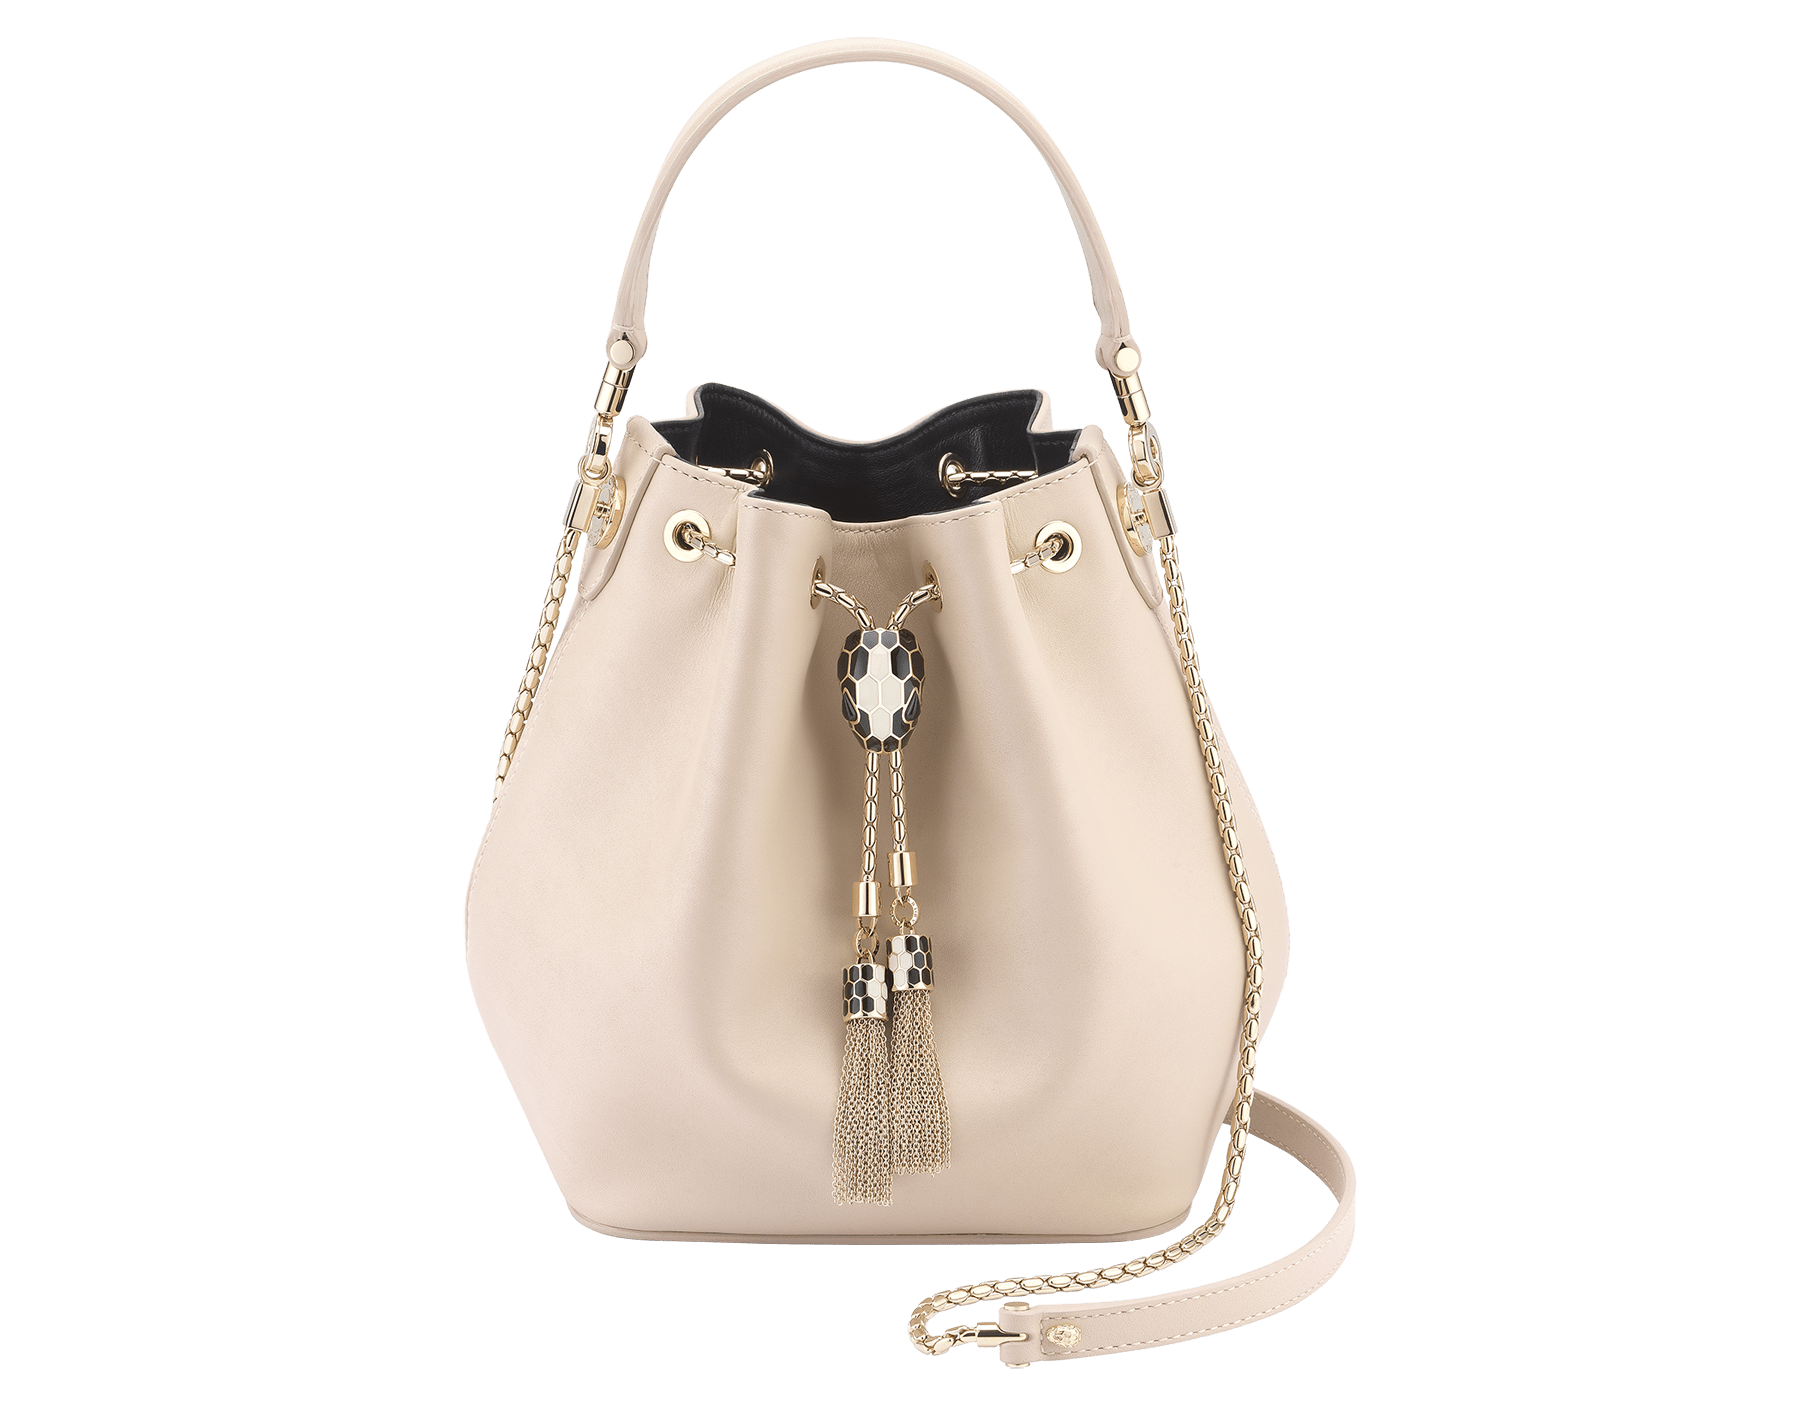 Bucket Serpenti Forever in glacier turquoise smooth calf leather and crystal rose nappa internal lining. Hardware in light gold plated brass and snakehead closure in black and white enamel, with eyes in black onyx. 934-CLb image 1